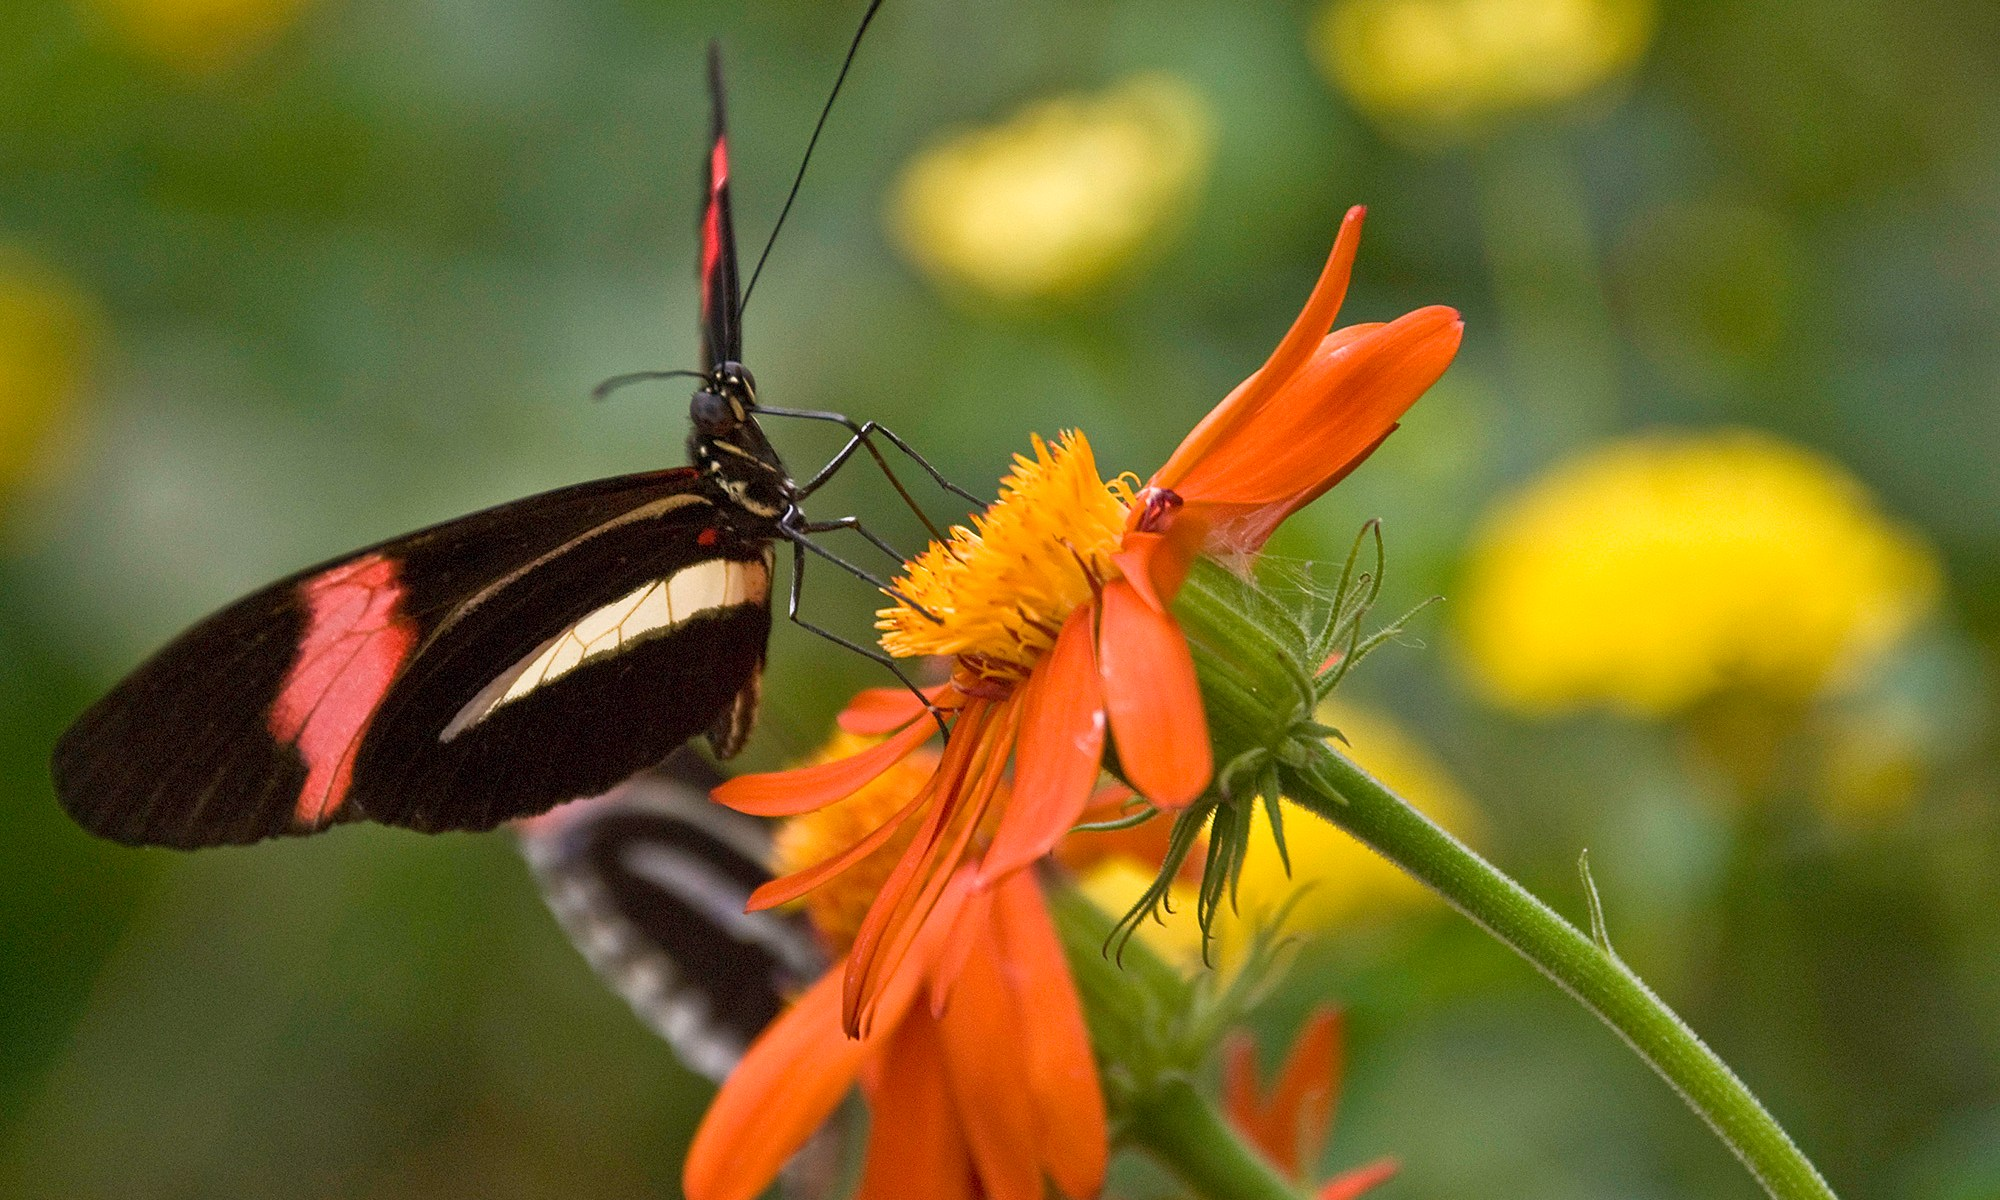 Black and Red Butterfly on Orange Flower